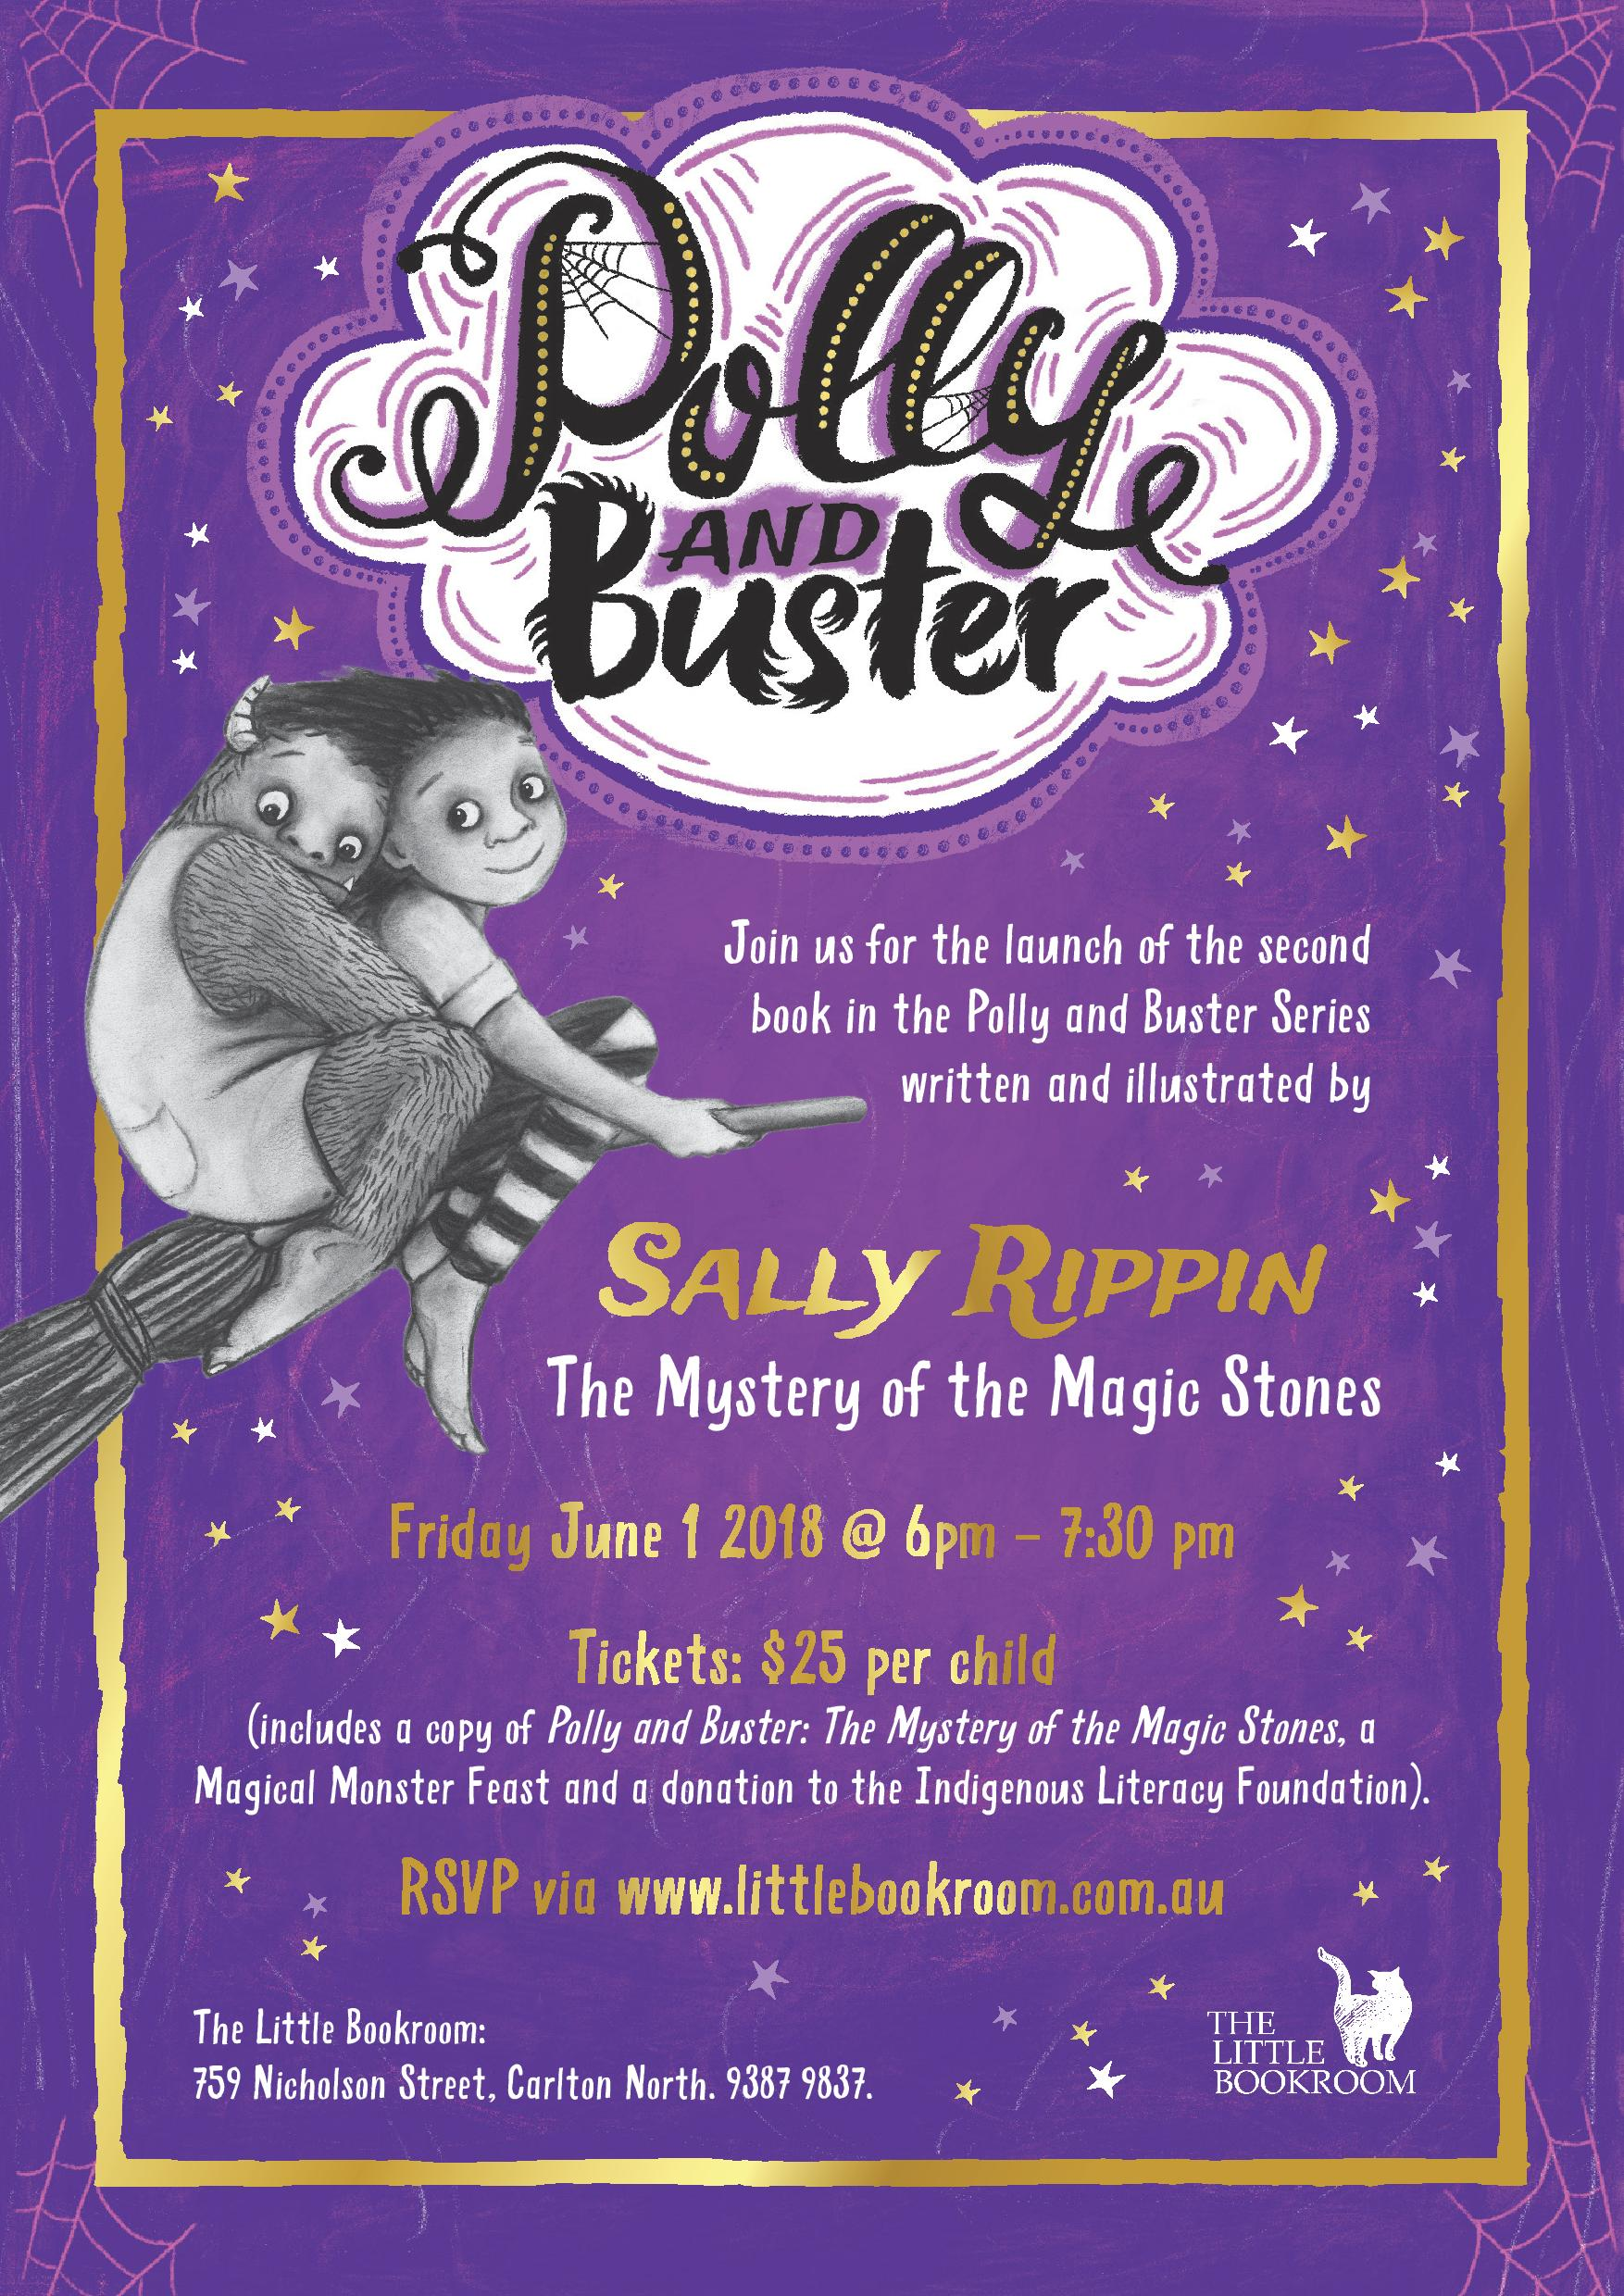 Book Launch: Polly and Buster The Mystery of the Magic Stones by Sally Rippin